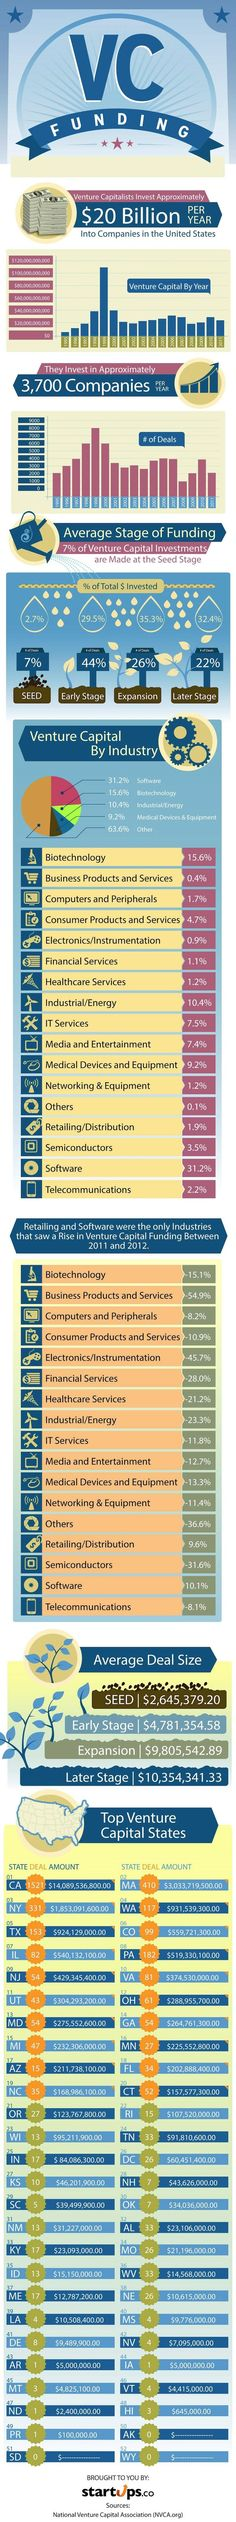 Find out how this money is spent and which industries receive the most funding. #Venture #capitalist